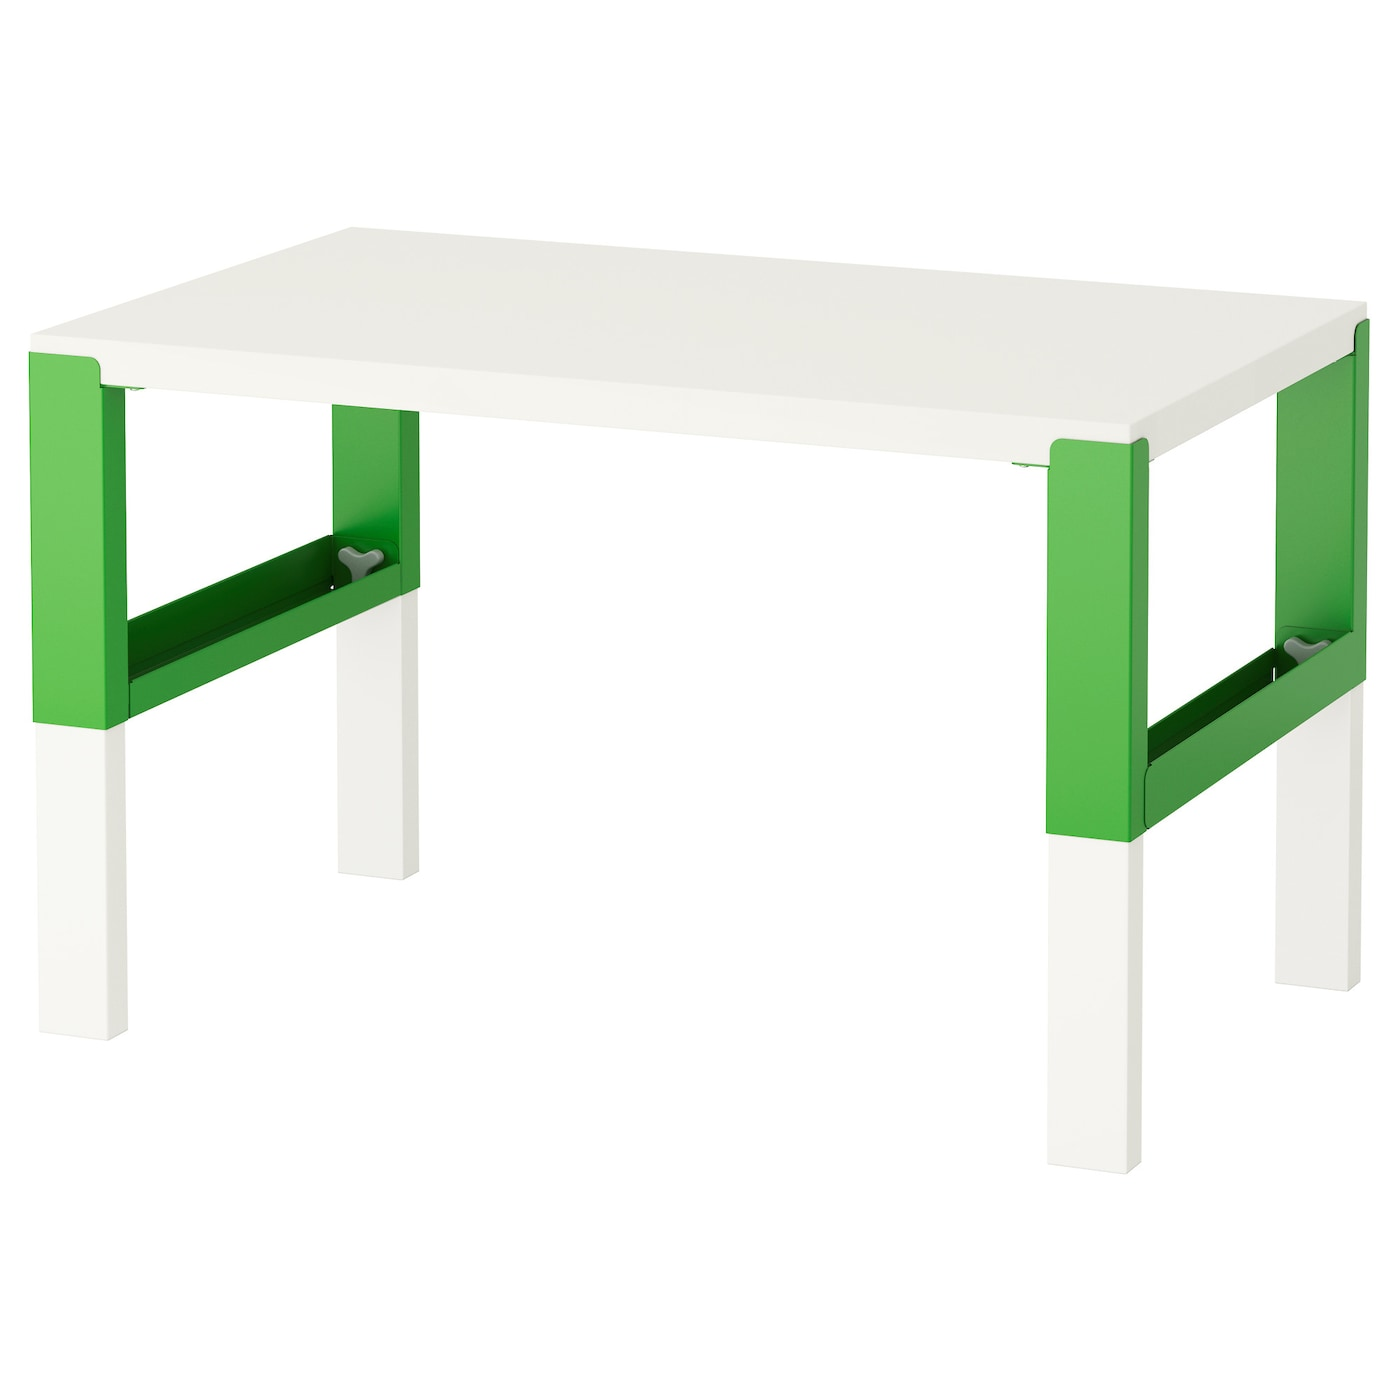 PHL Desk Whitegreen 96x58 cm IKEA